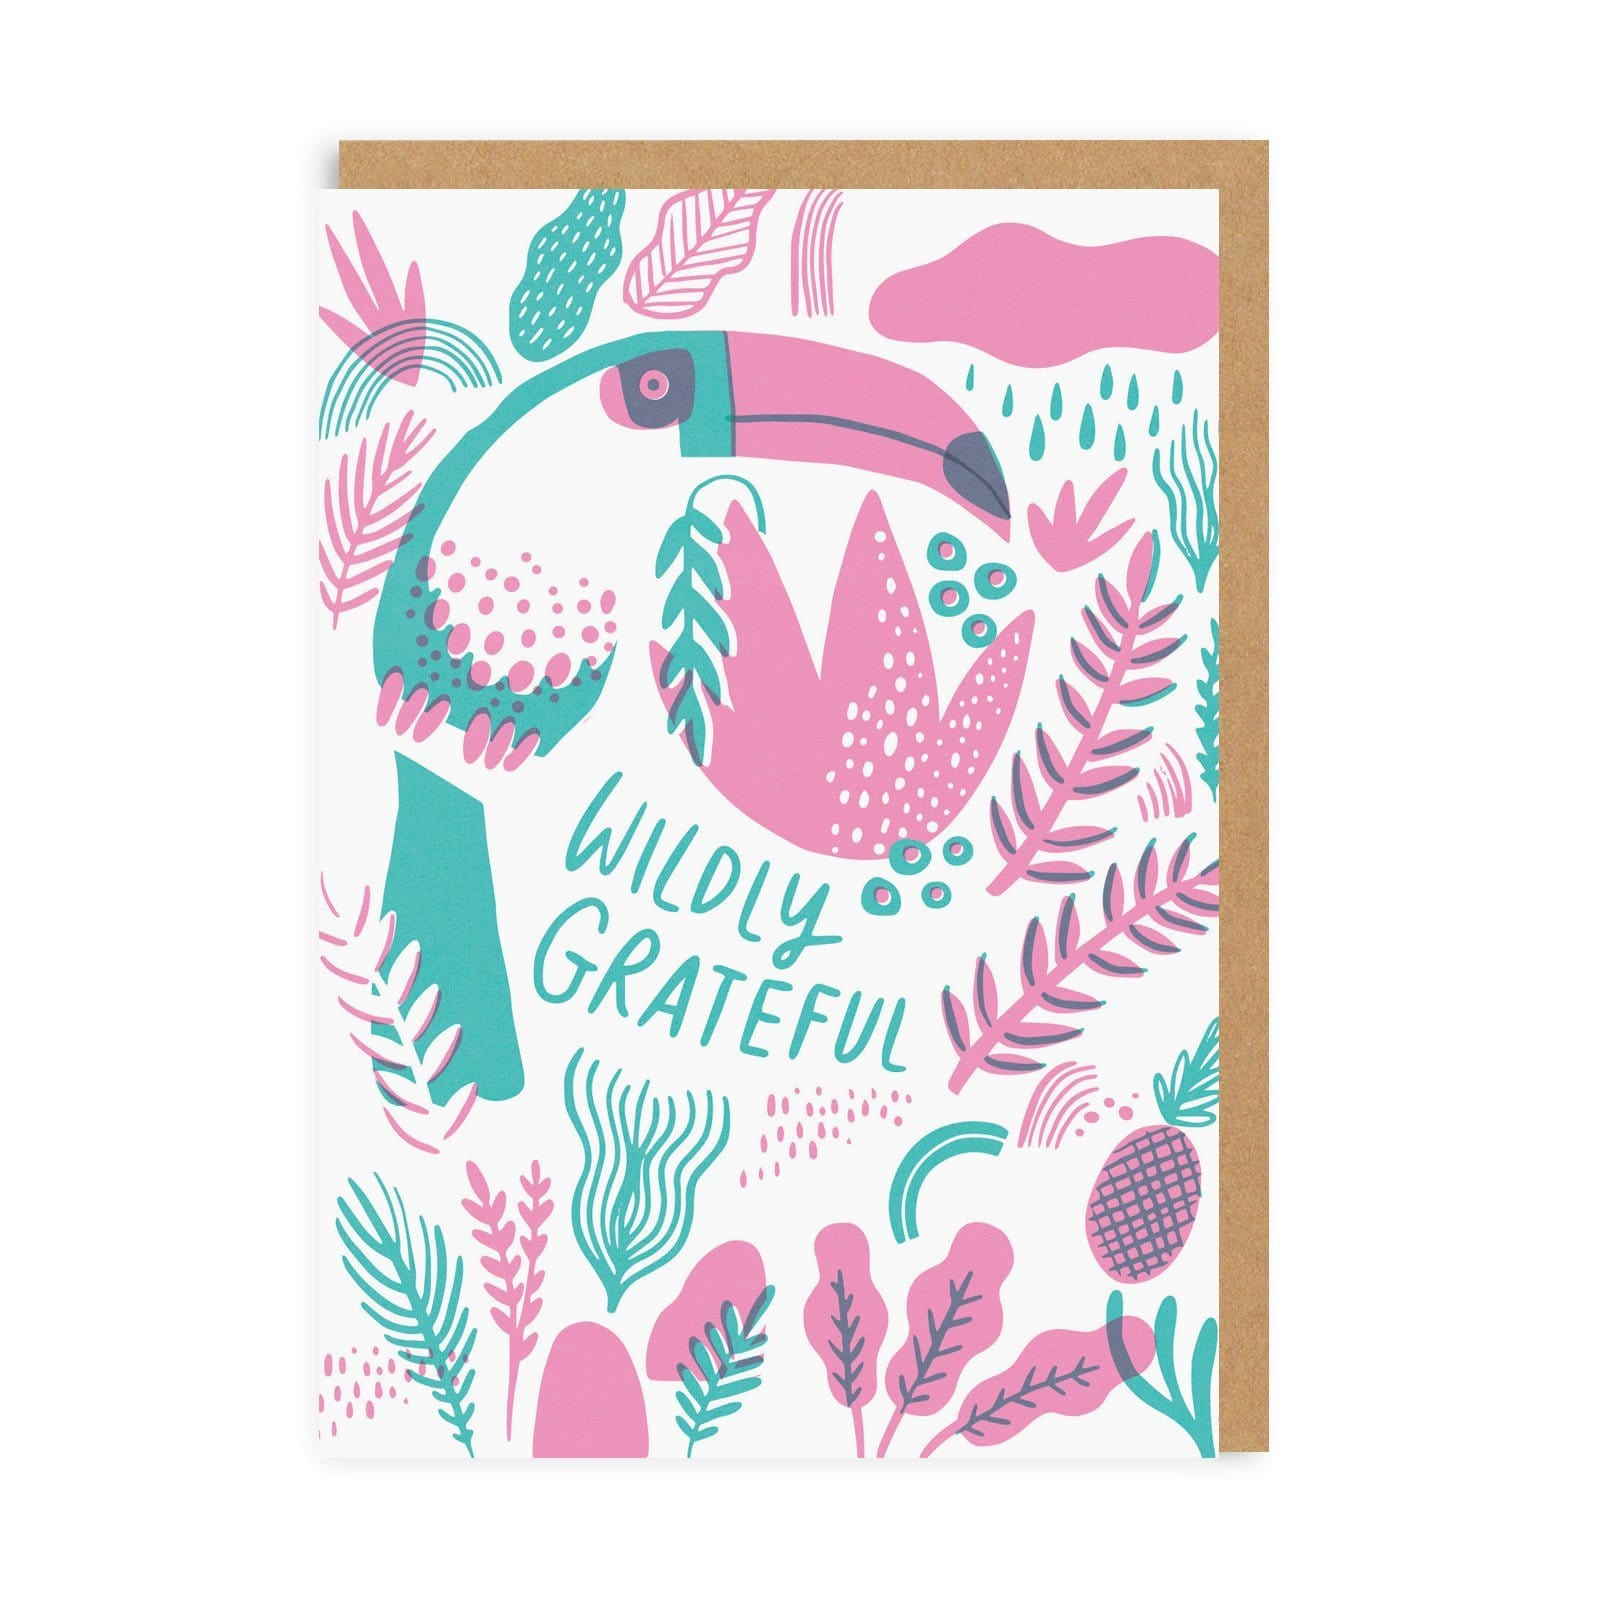 Wildly Grateful Greeting Card